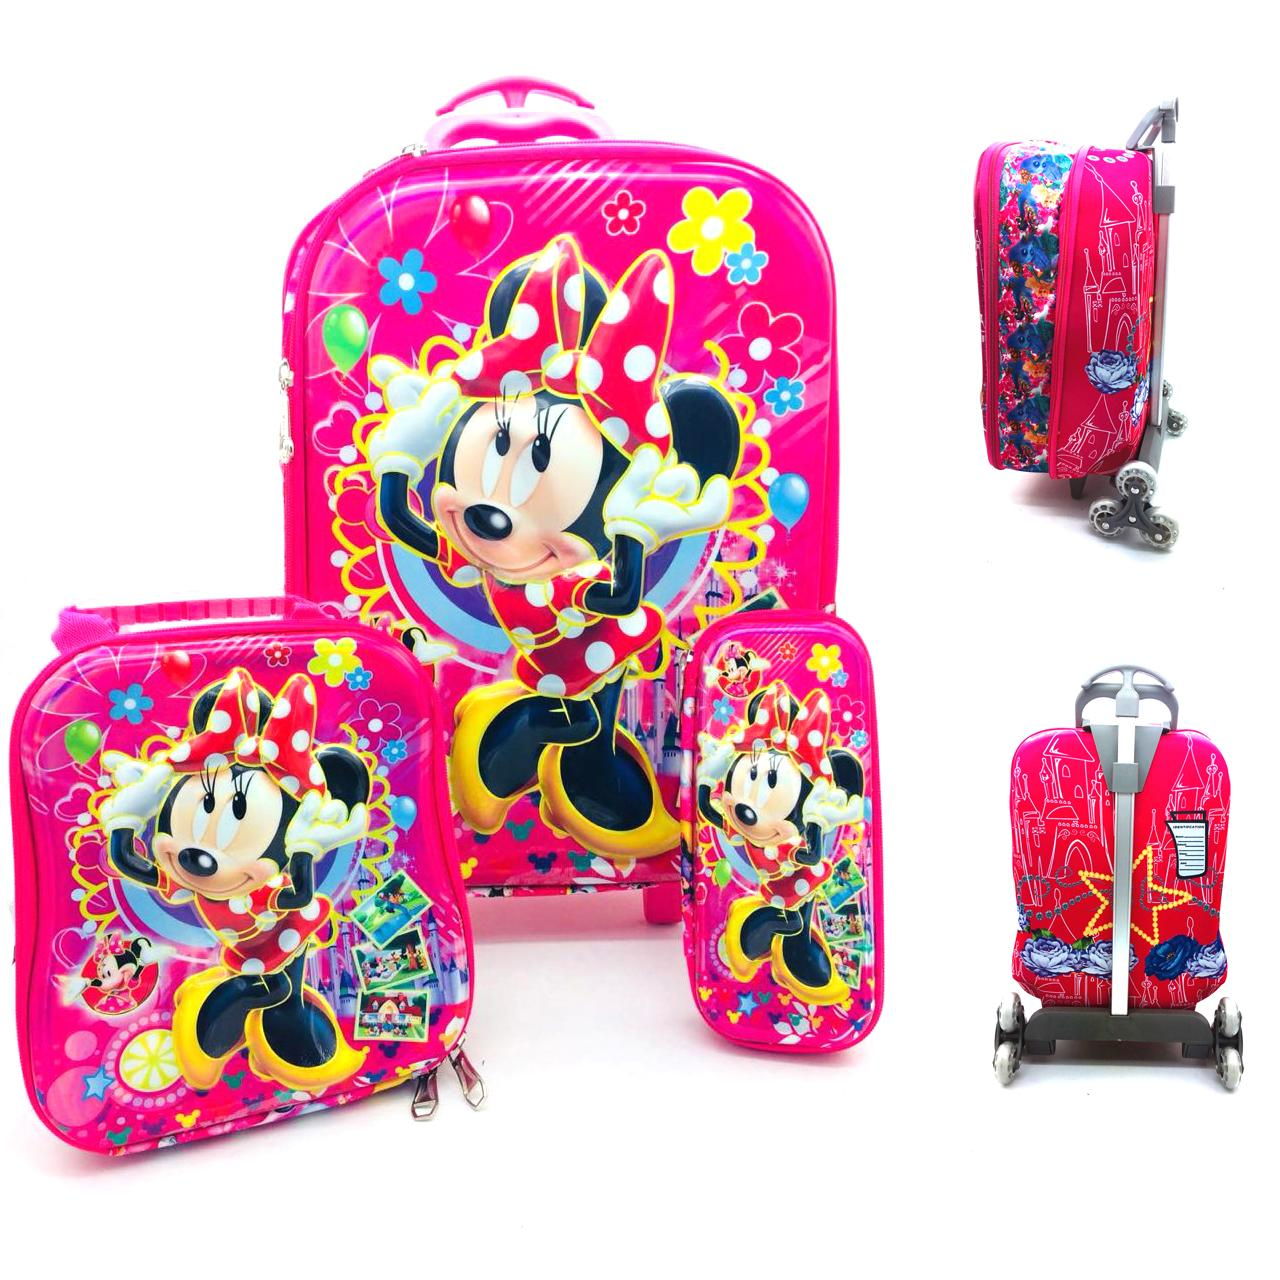 53d813bd2f Abby Shi Kids 2 Zipper Girls Boys 6D 3 Piece Luggage Trolley Wheel Set  Cabin Suitcase